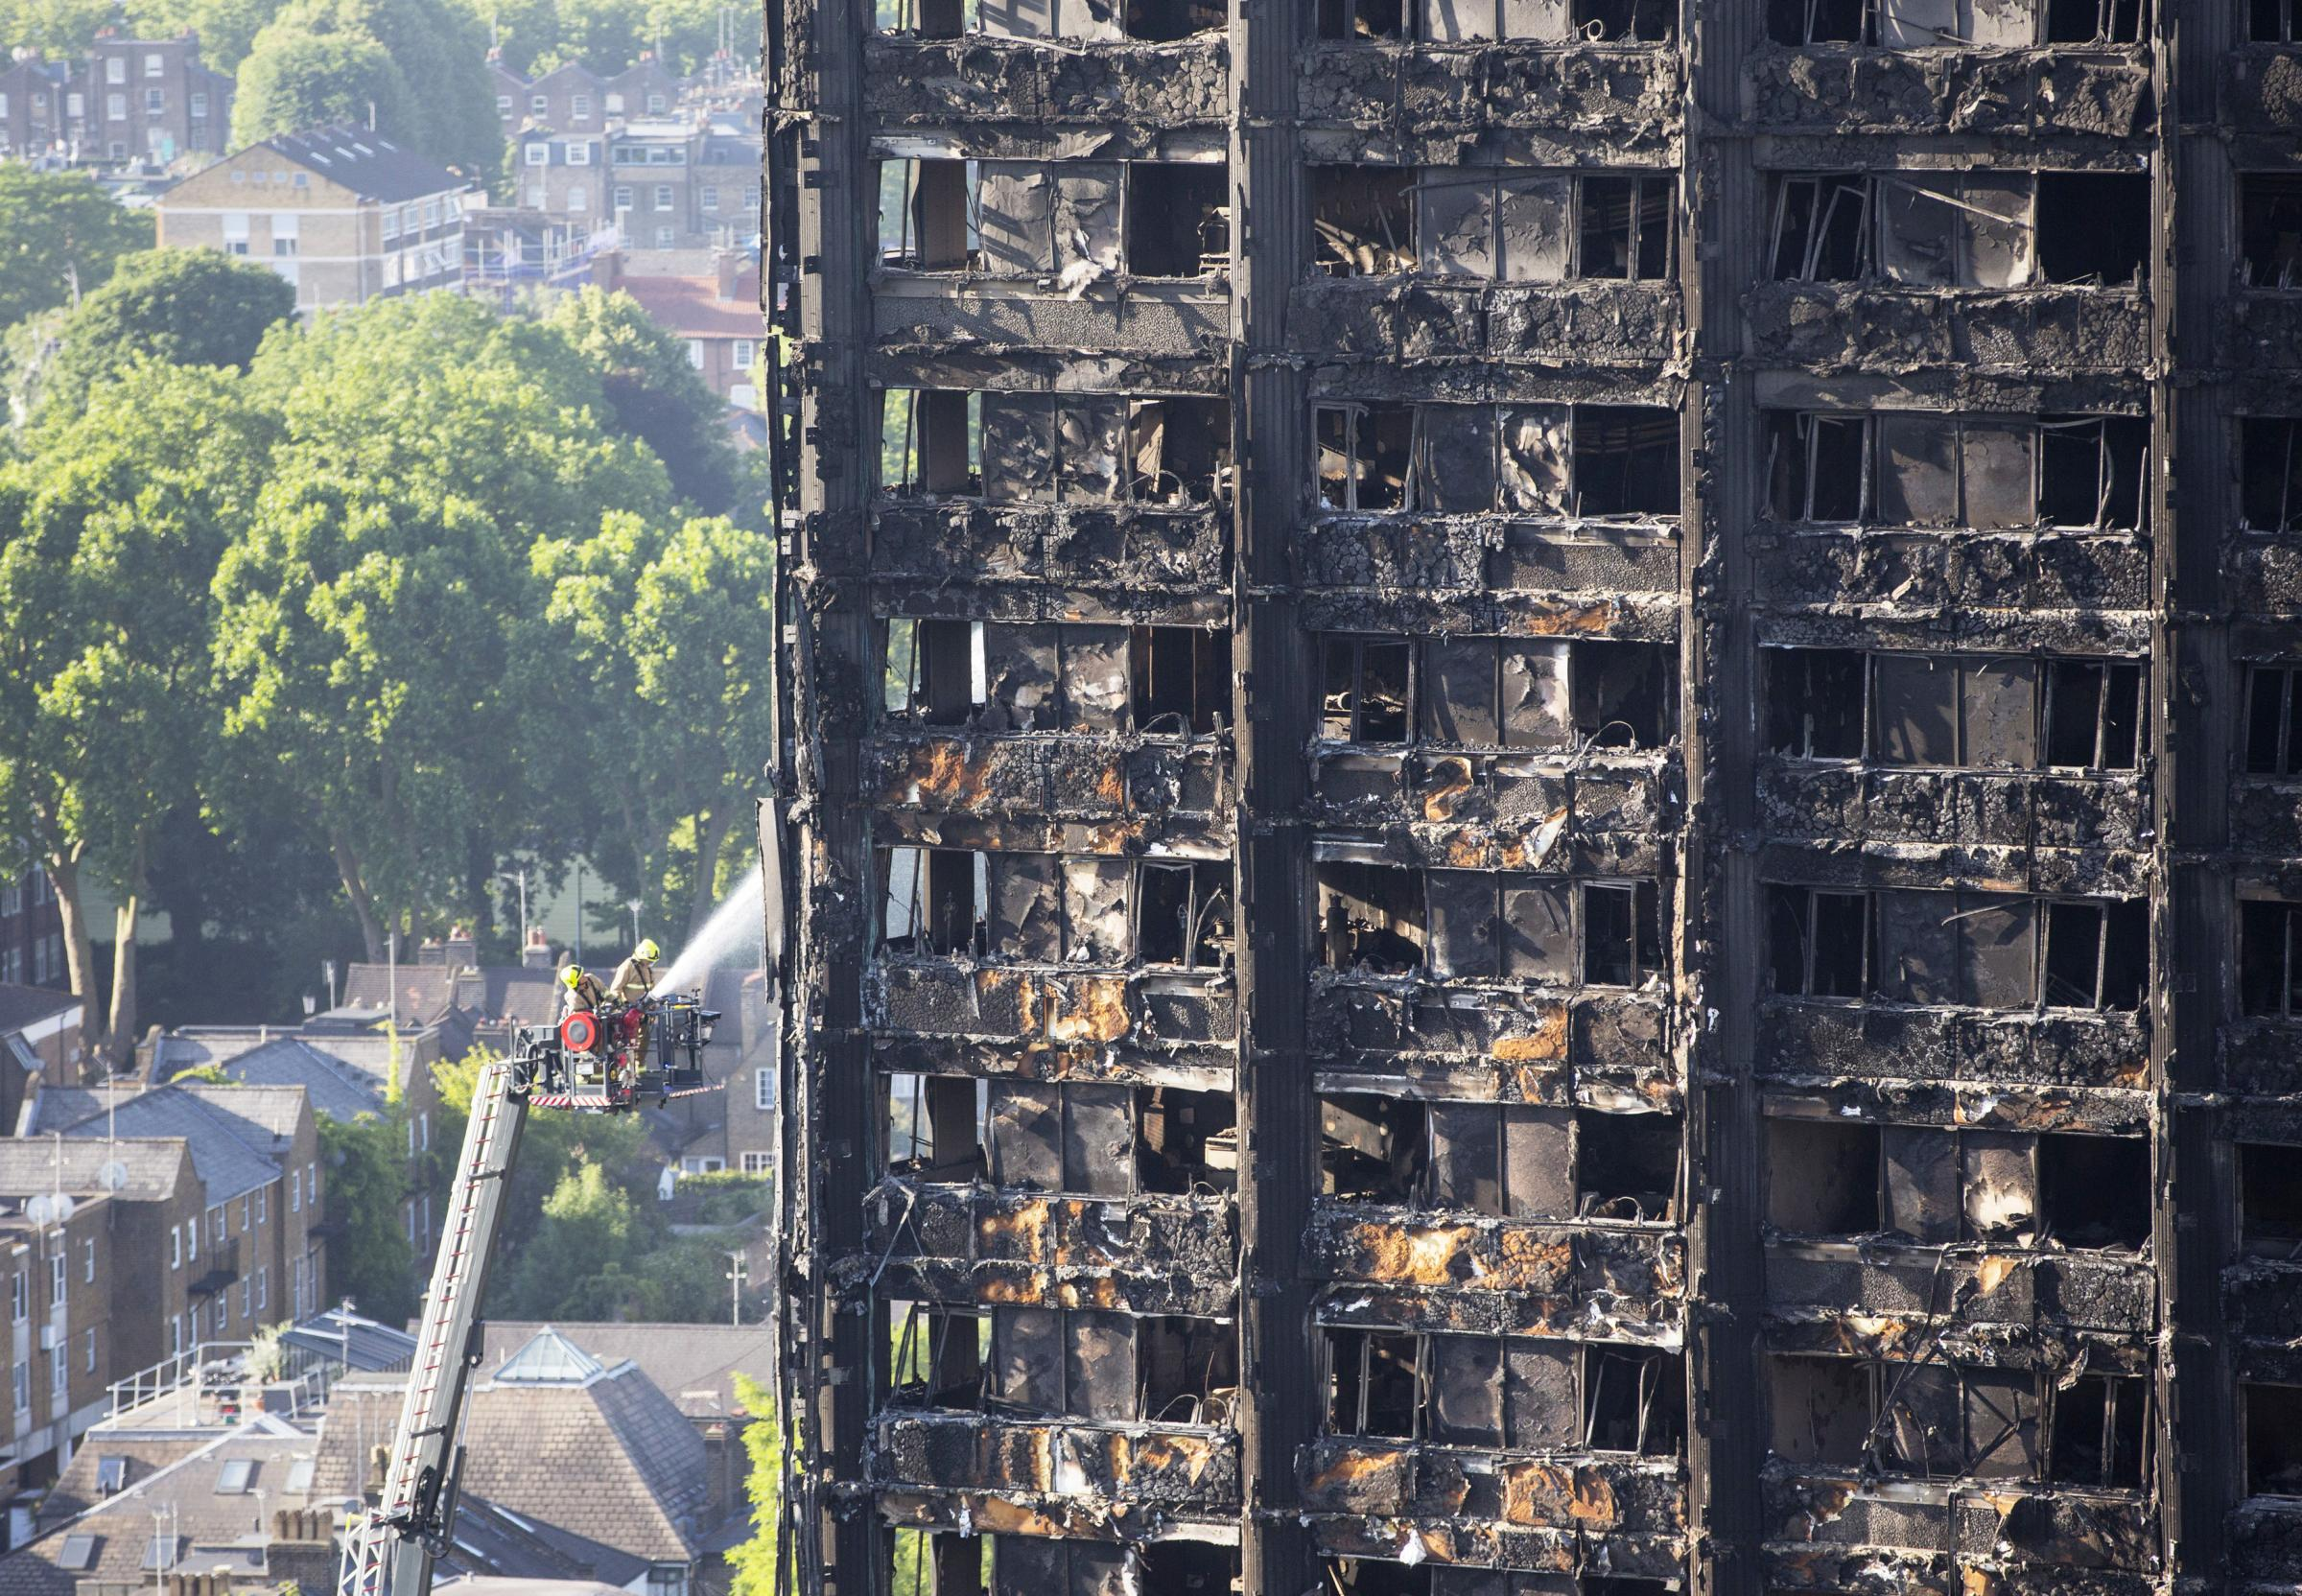 London fire: Government staff drafted to help victims